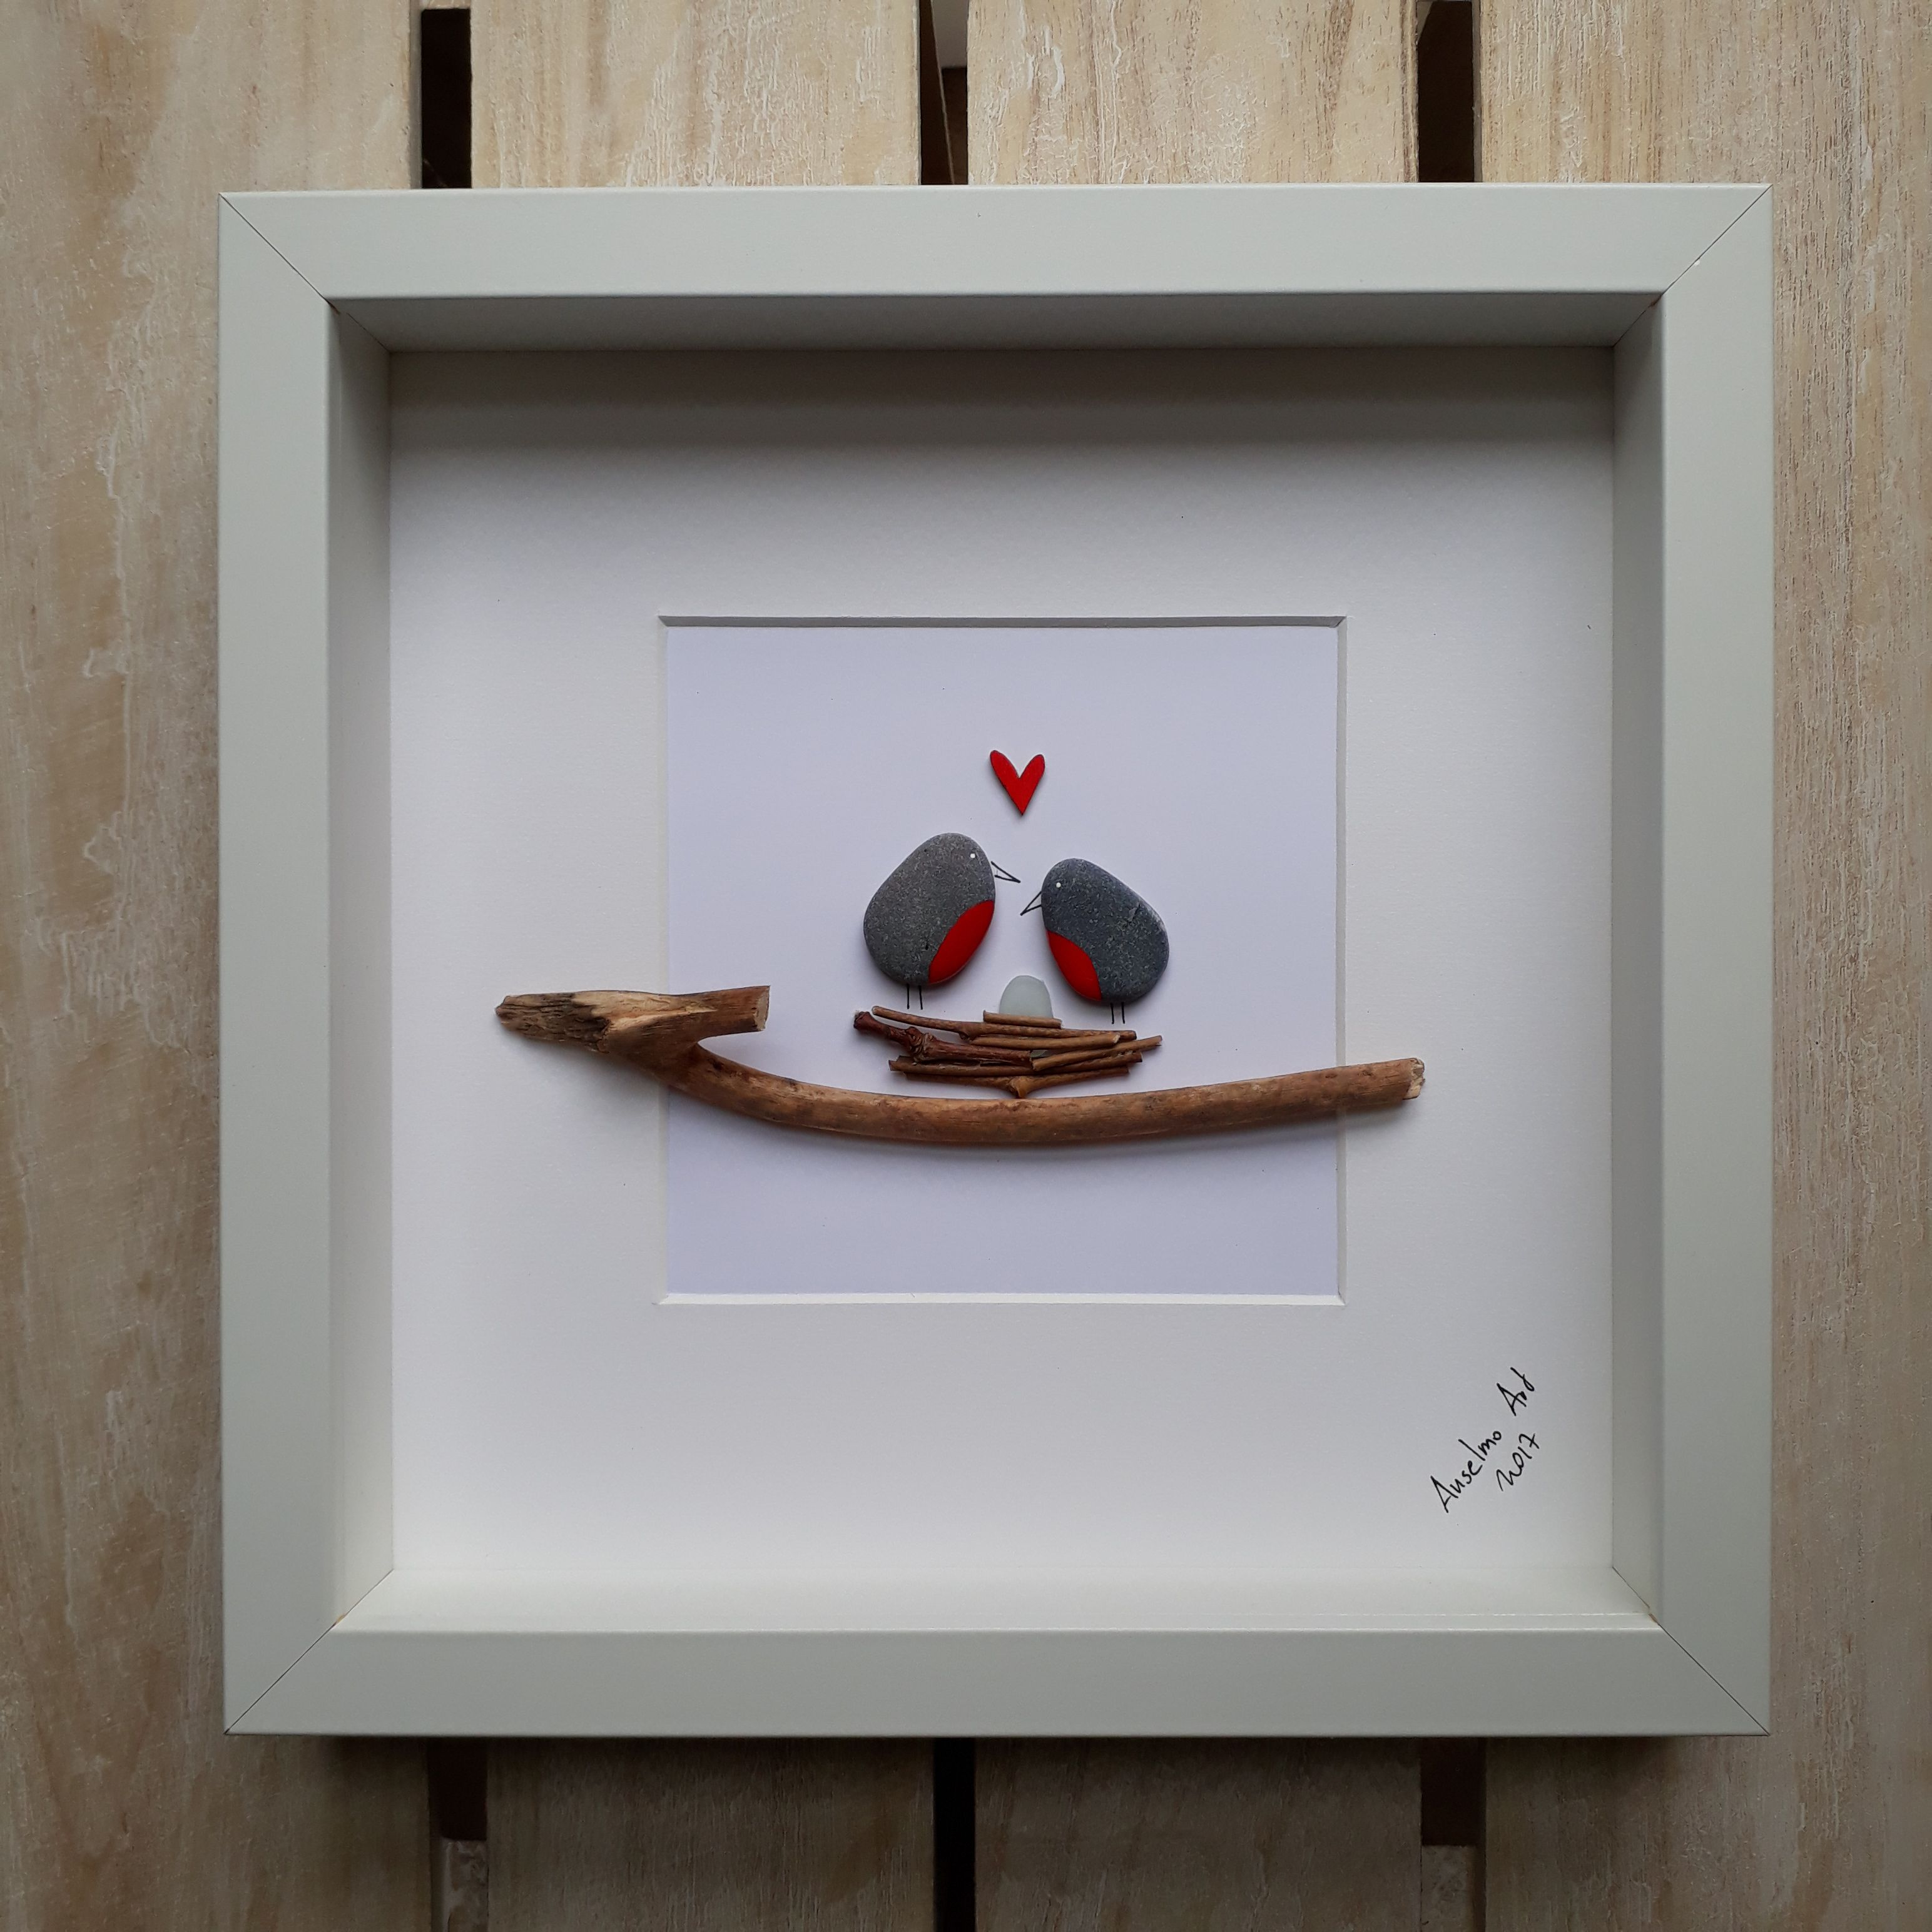 New Home Pebble Pictures, Framed Pebble Art, Birthday Gift, Sea